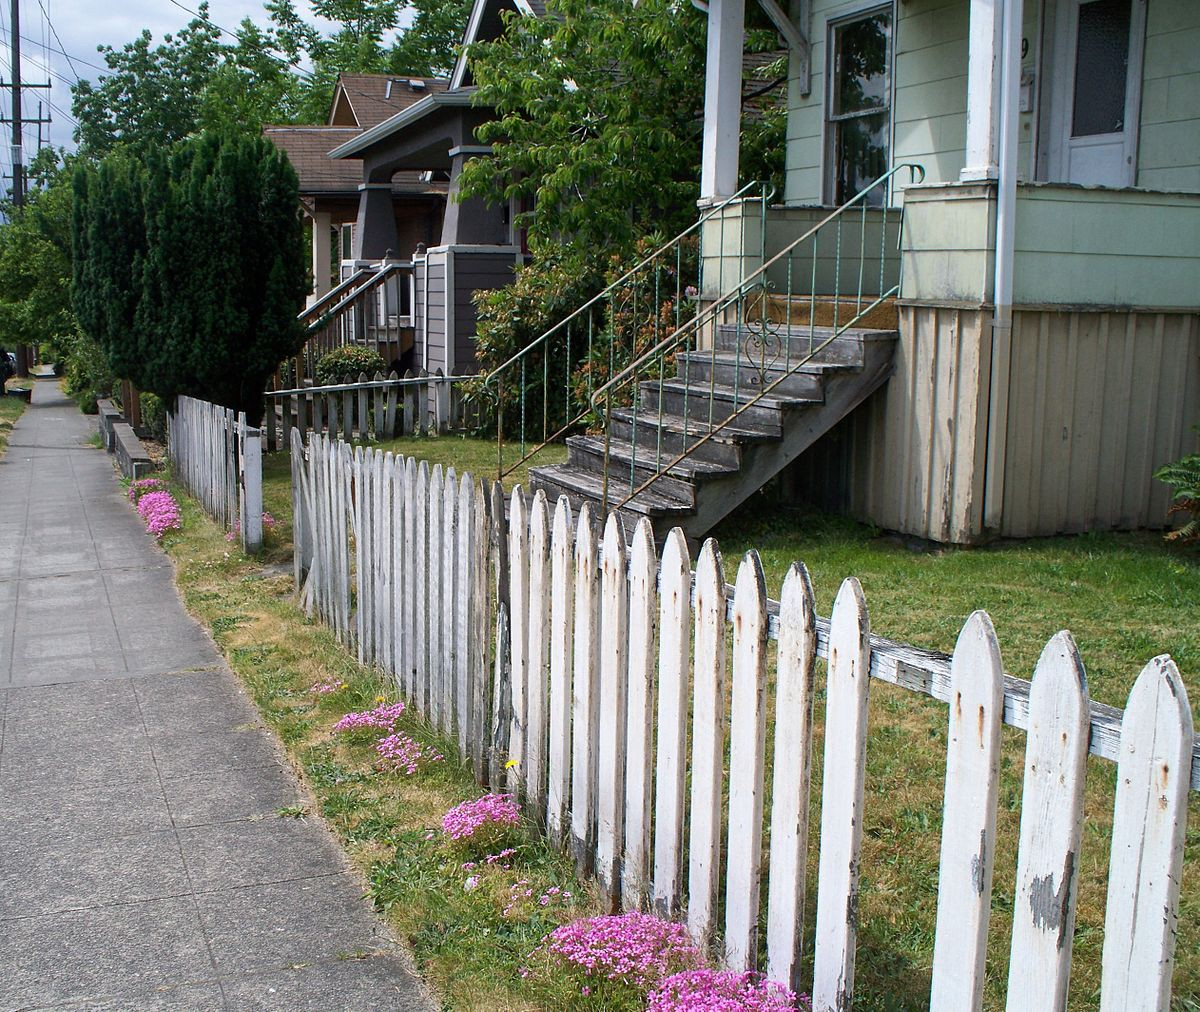 A decaying white garden fence, in front of a worn out blue house.